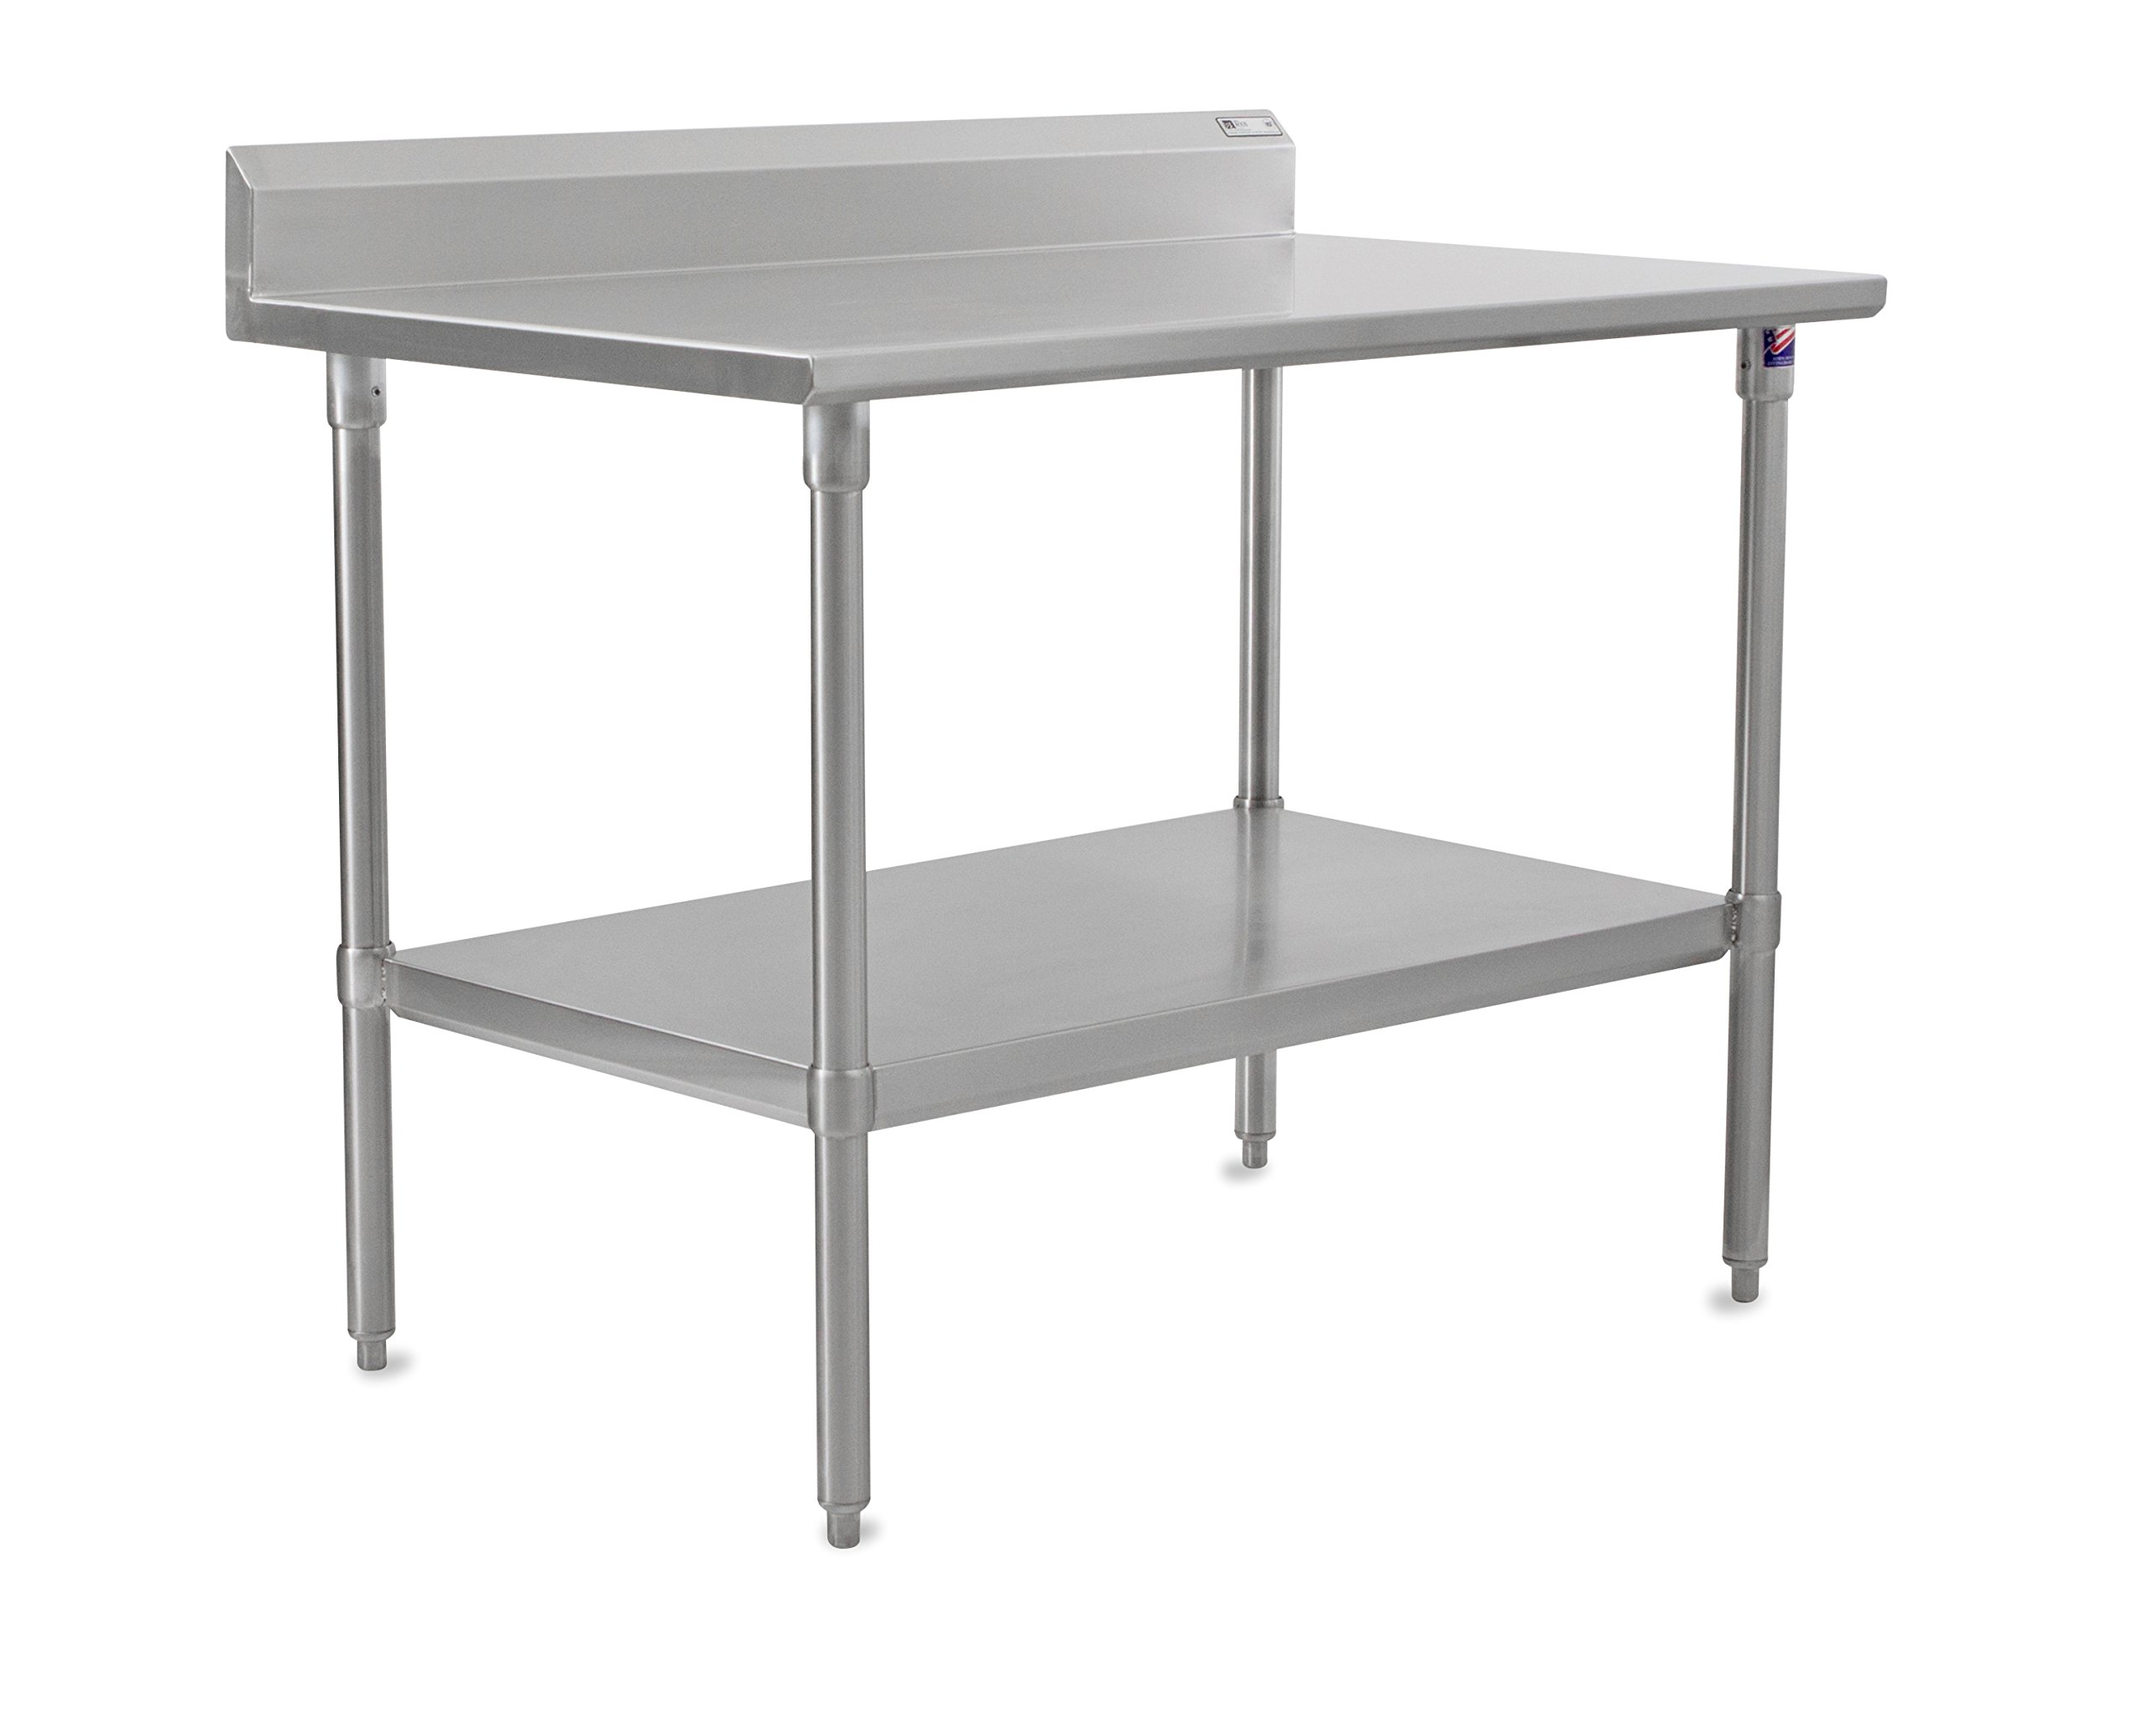 John Boos Stallion ST6R5-3060SSK Stainless Steel 5'' Riser Top Work Table with Adjustable Stainless Steel Lower Shelf and Legs, 5'' Riser Top, 60'' Length x 30'' Width